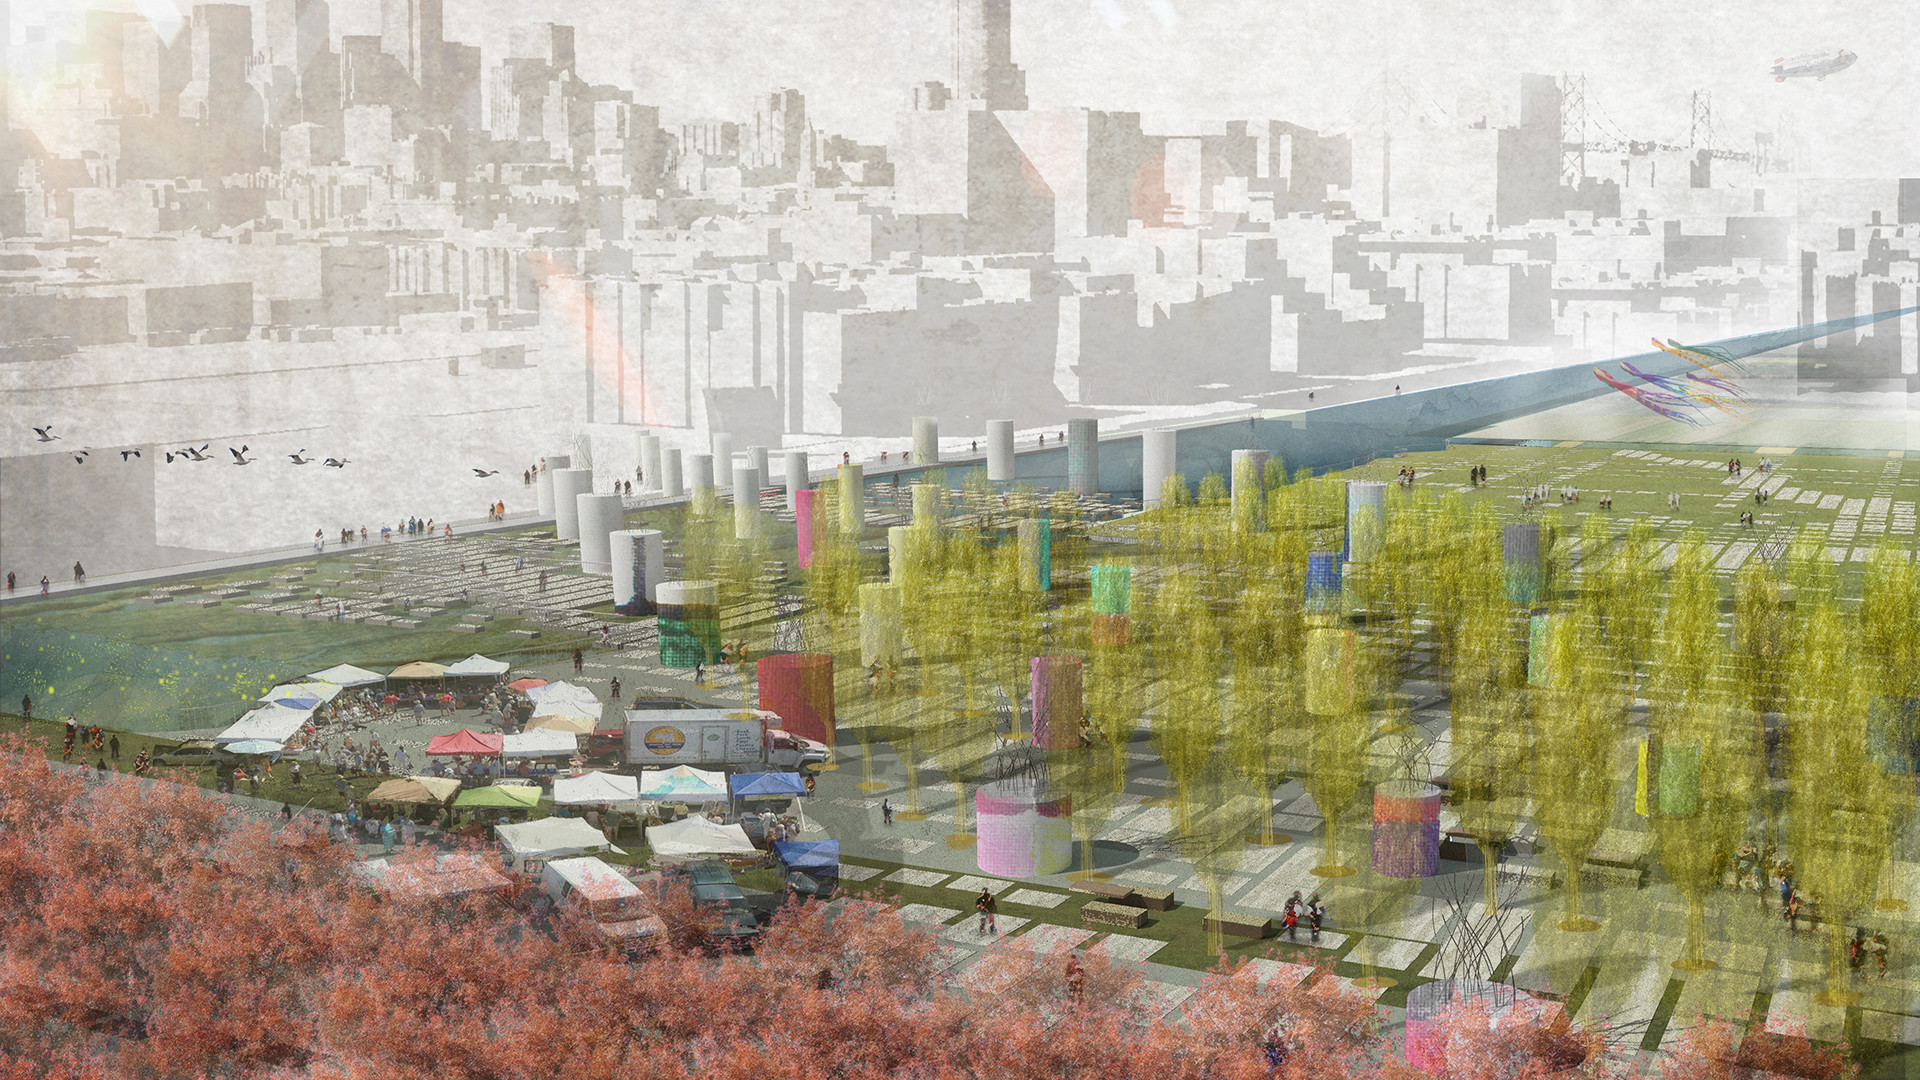 Winners Proposals Suggest Alternatives for San Francisco's 280 Freeway, Fieldshift by Erik Jensen and Justin Richardson. Image Courtesy of The Center for Architecture + Design